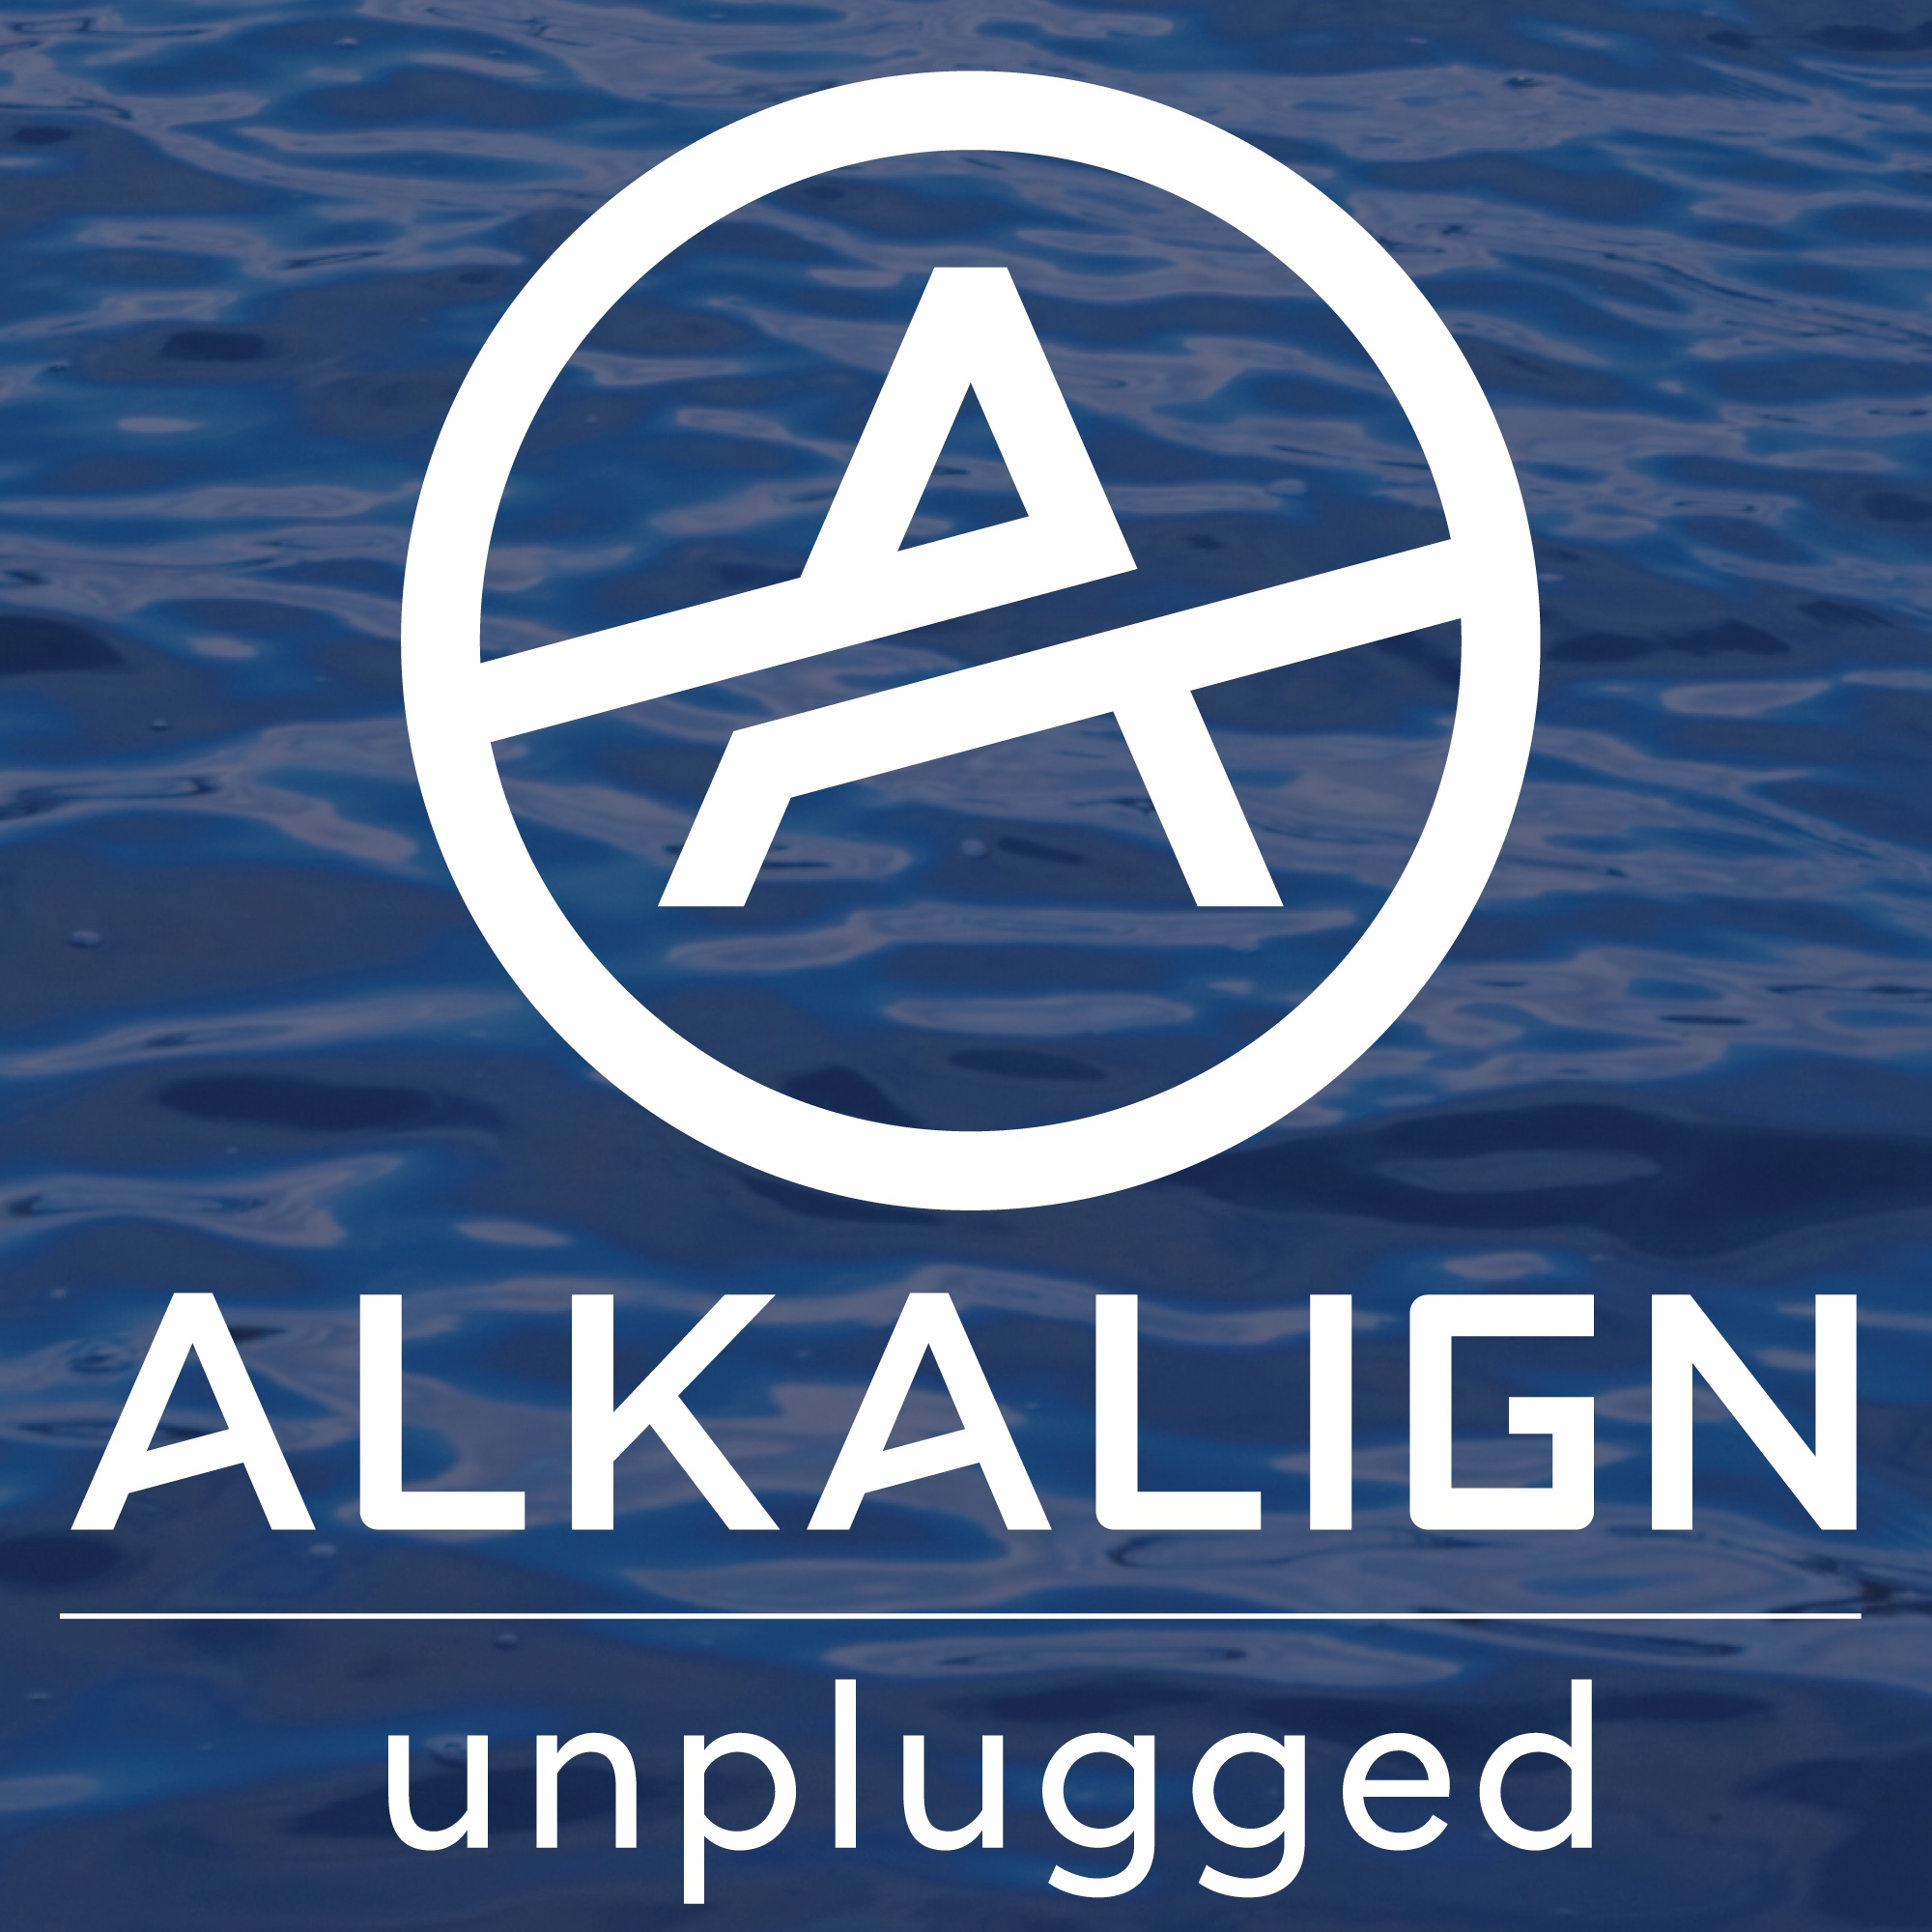 Episode 1: Alkalign Founder and CEO, Erin Paruszewski